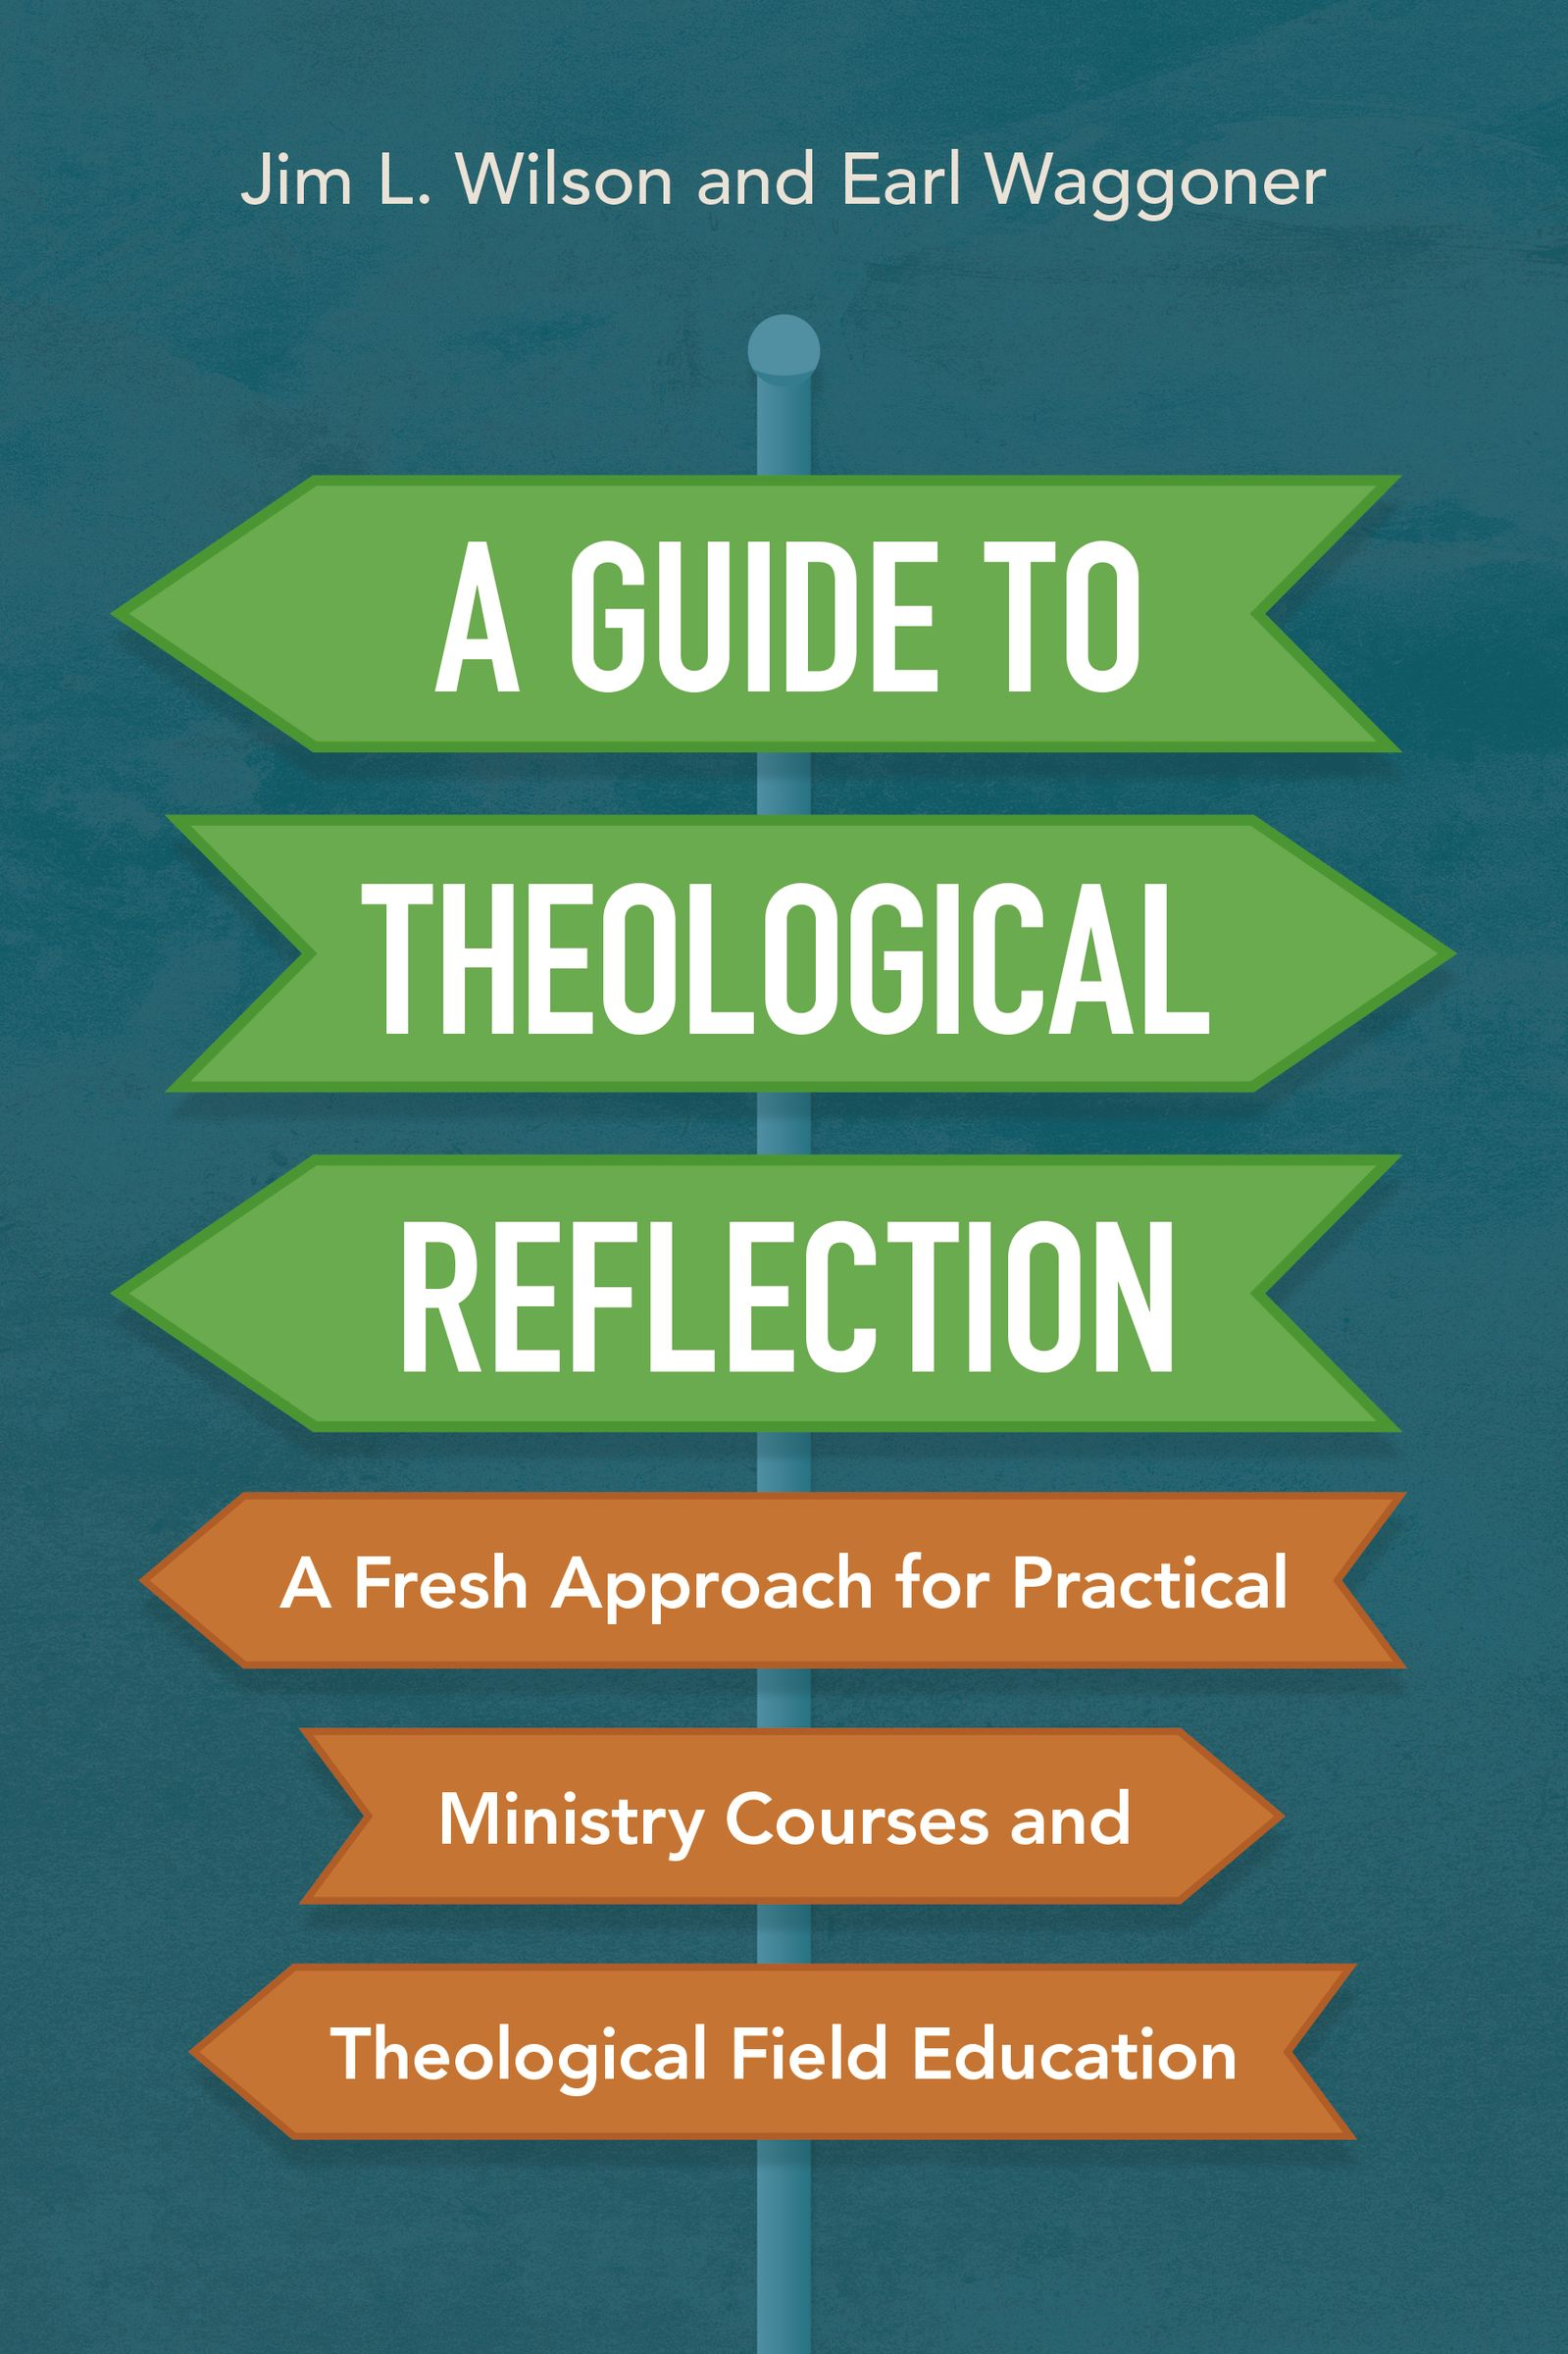 A Guide to Theological Reflection